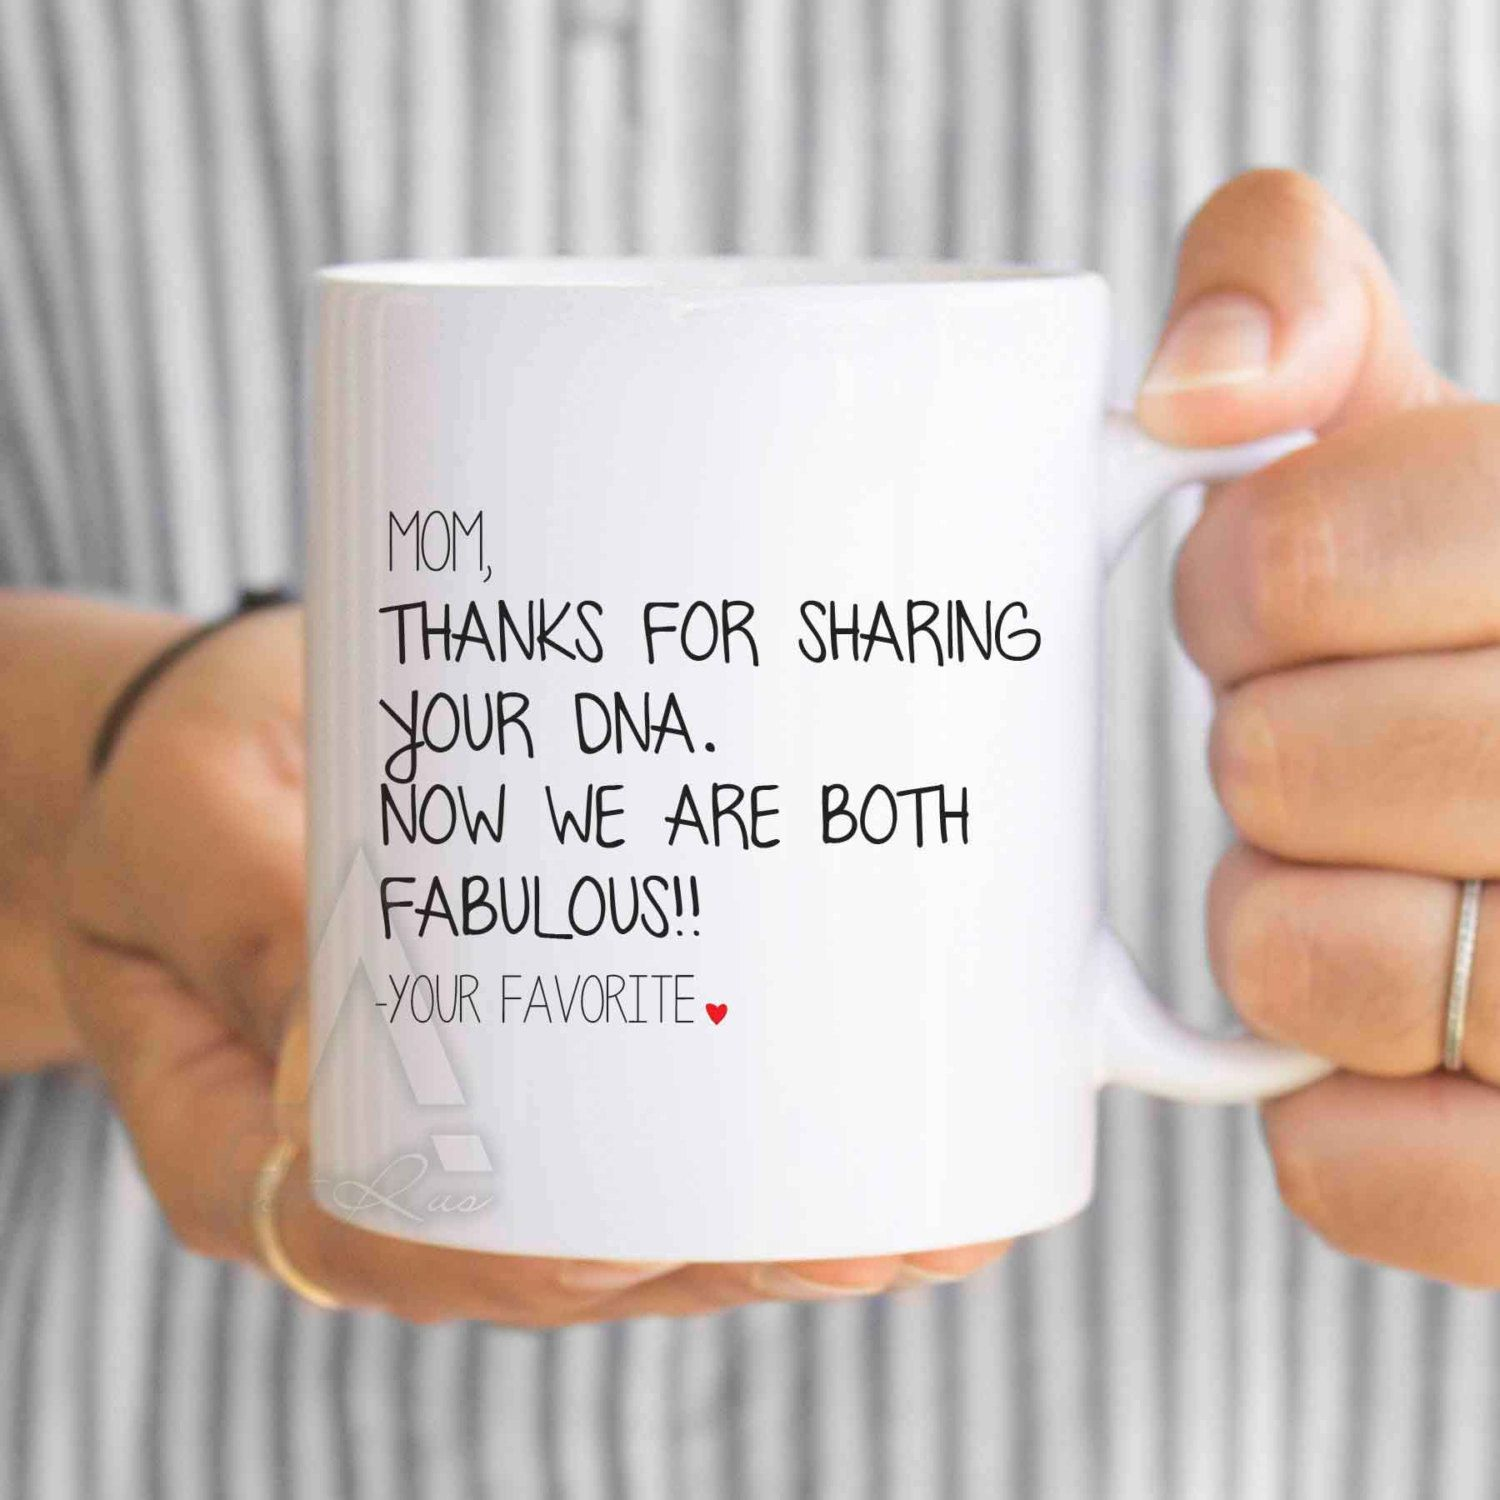 Mom Christmas Gift From Daughter Funny Coffee Mug For Mom Mom